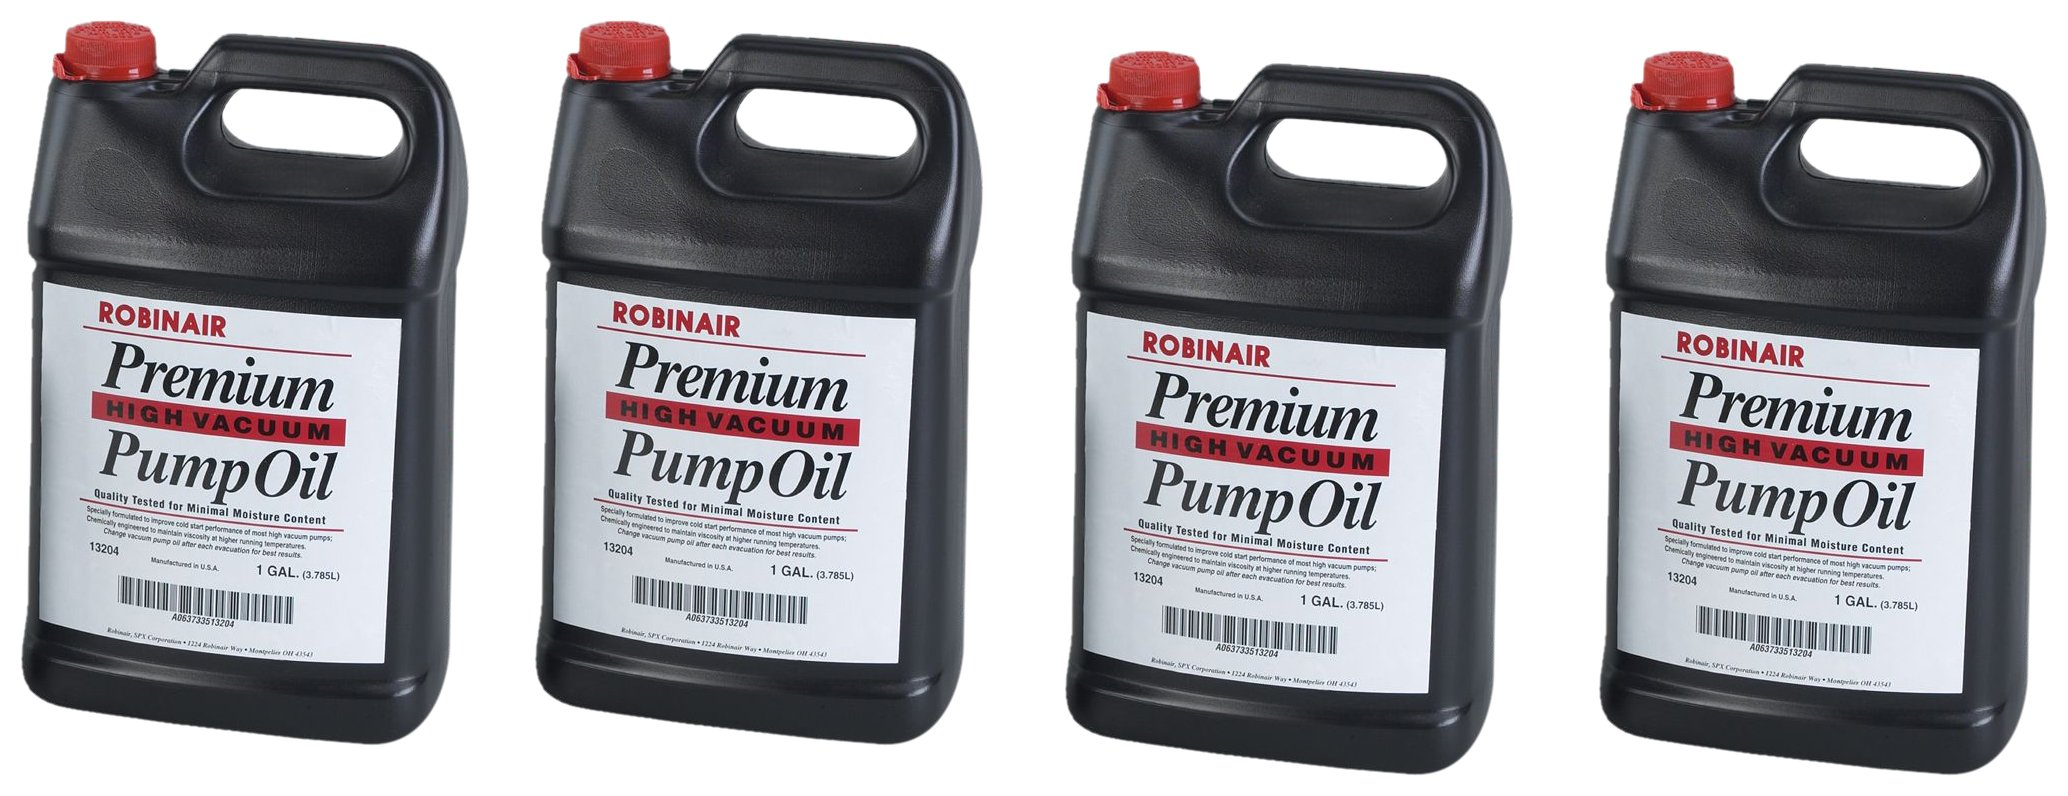 Robinair 13204 Premium High Vacuum Pump Oil - 4- one gallon jugs by Robinair (Image #1)